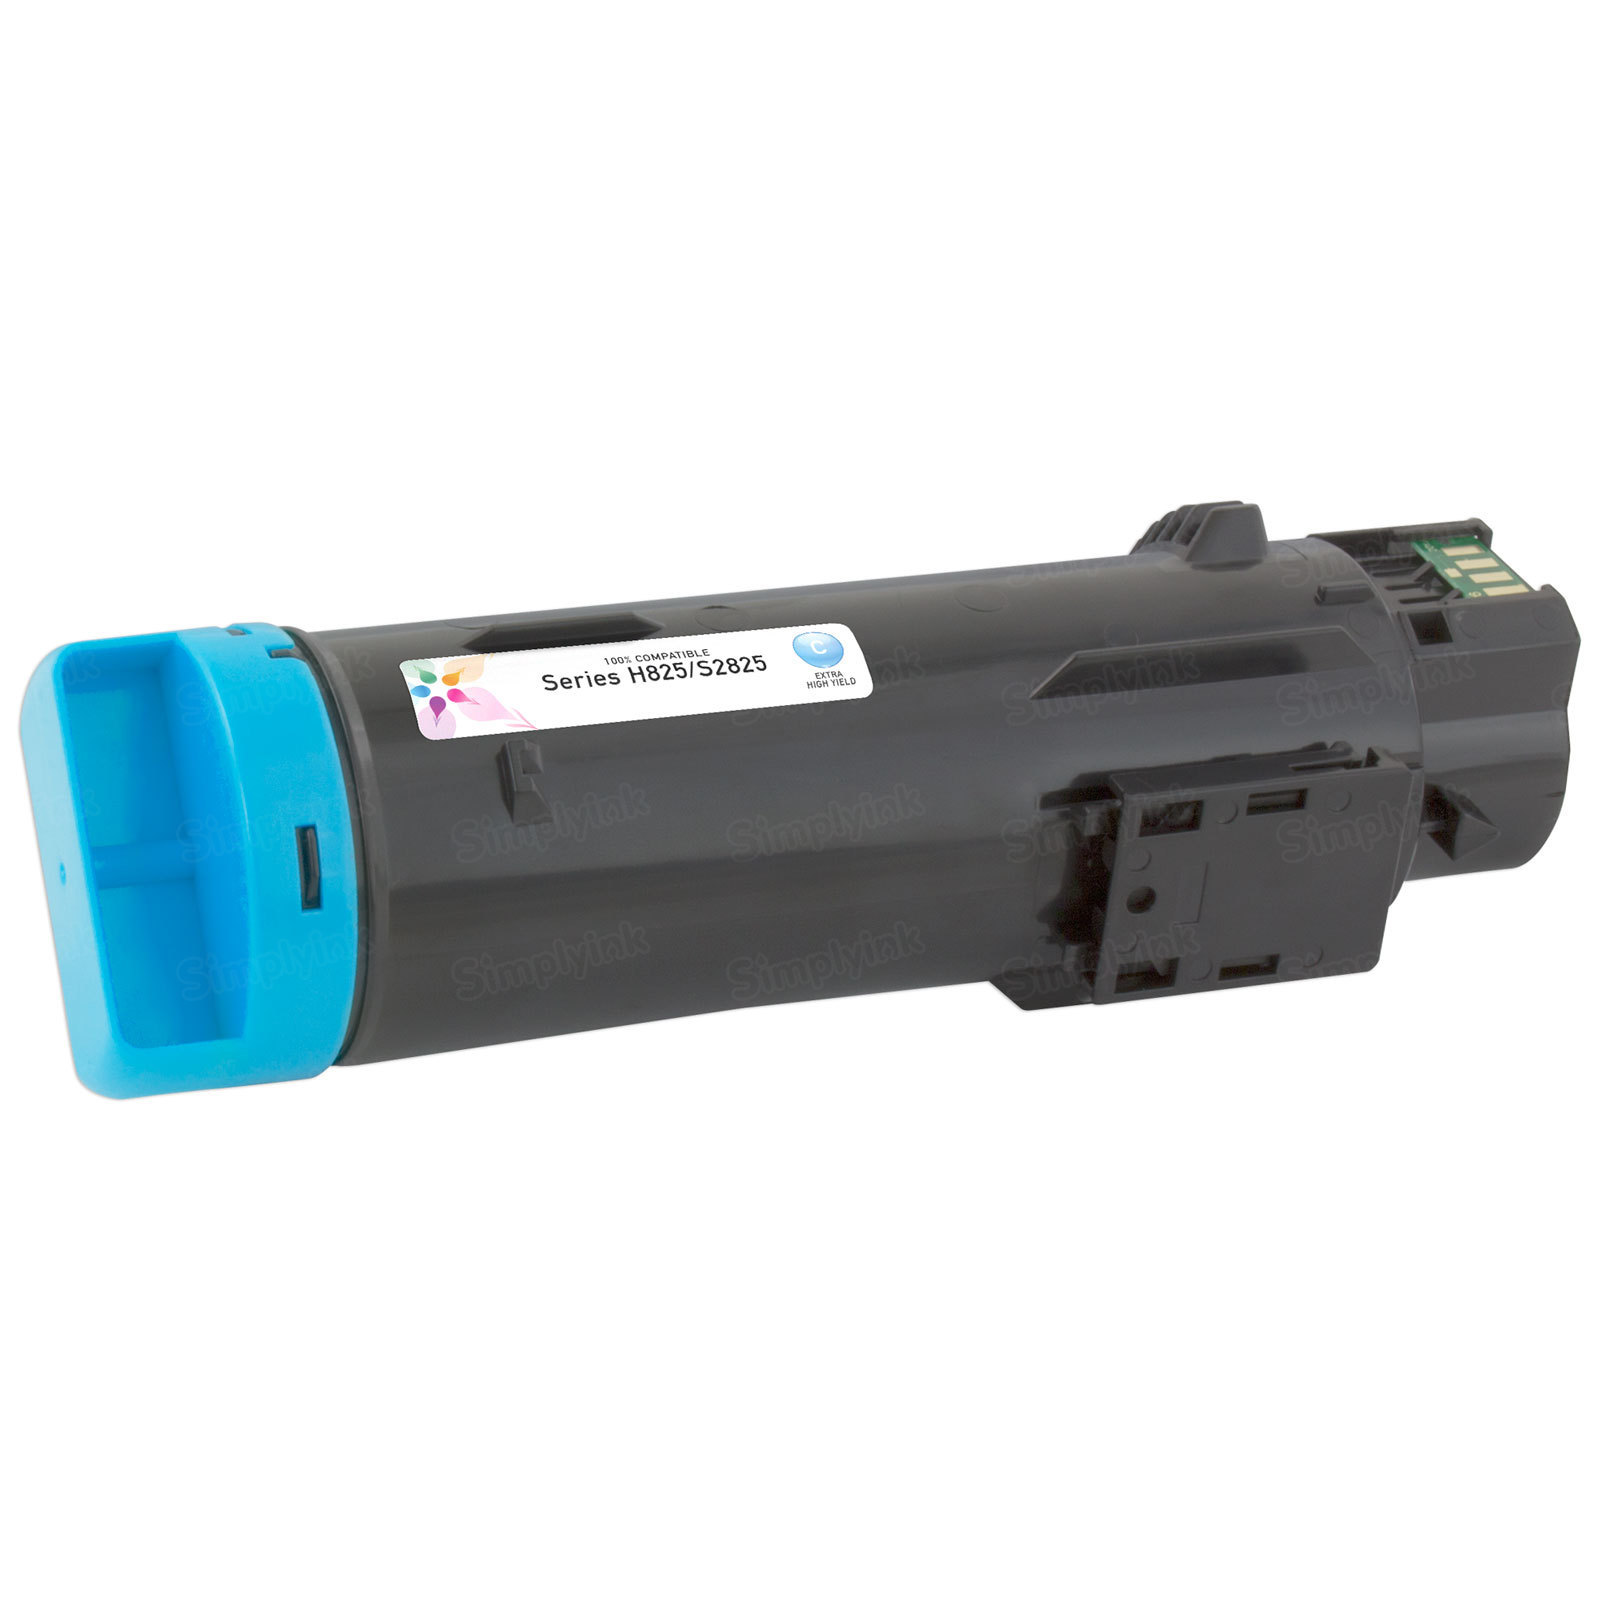 Comp. Cyan 4Y75H Toner for Dell H825/S2825